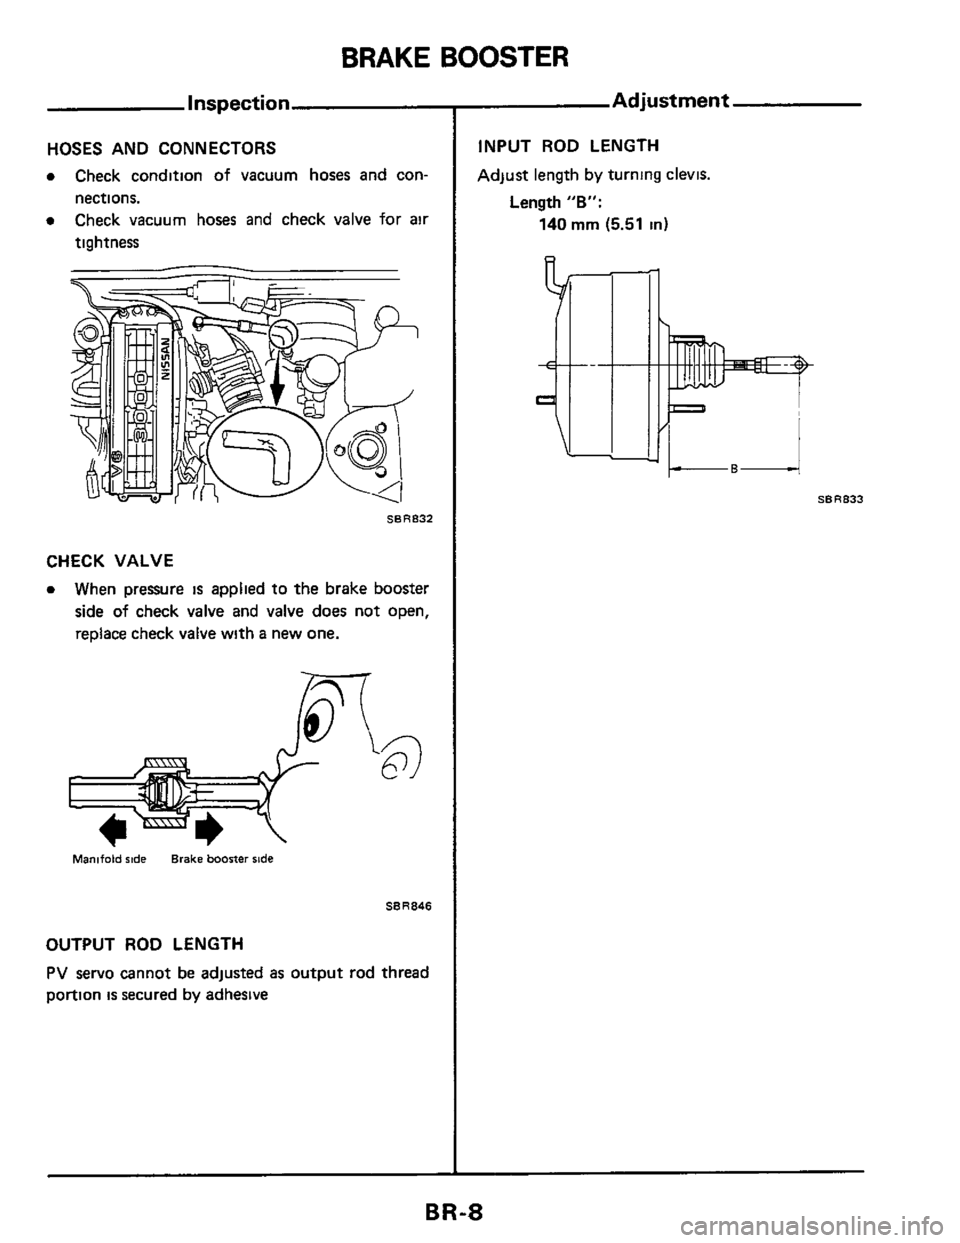 NISSAN 300ZX 1984 Z31 Brake System Workshop Manual, Page 8